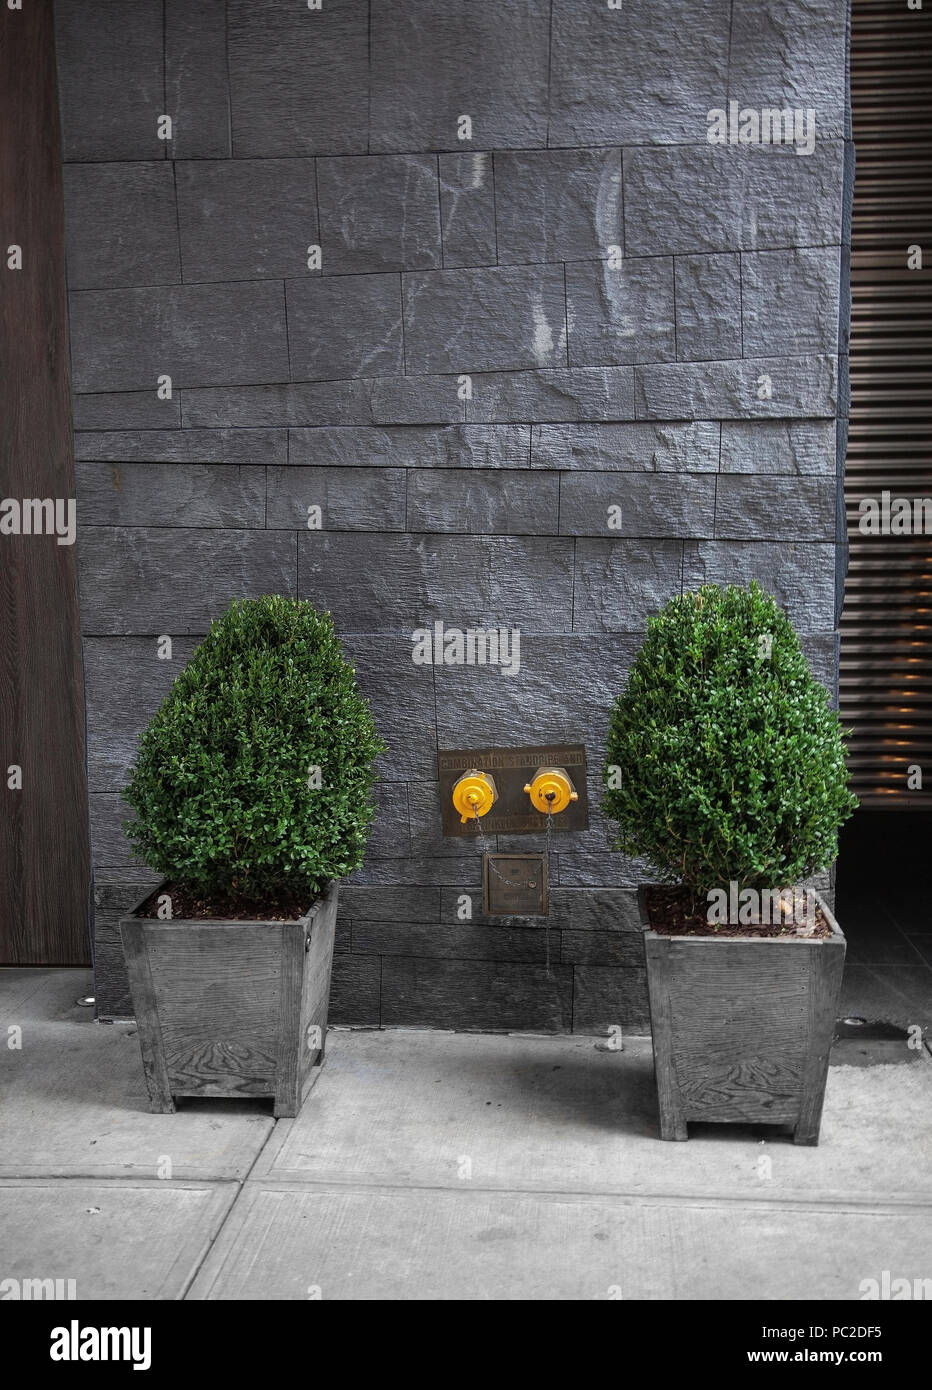 Two small trees in a pot and a Hotel entrance in New York City Center, USA Stock Photo